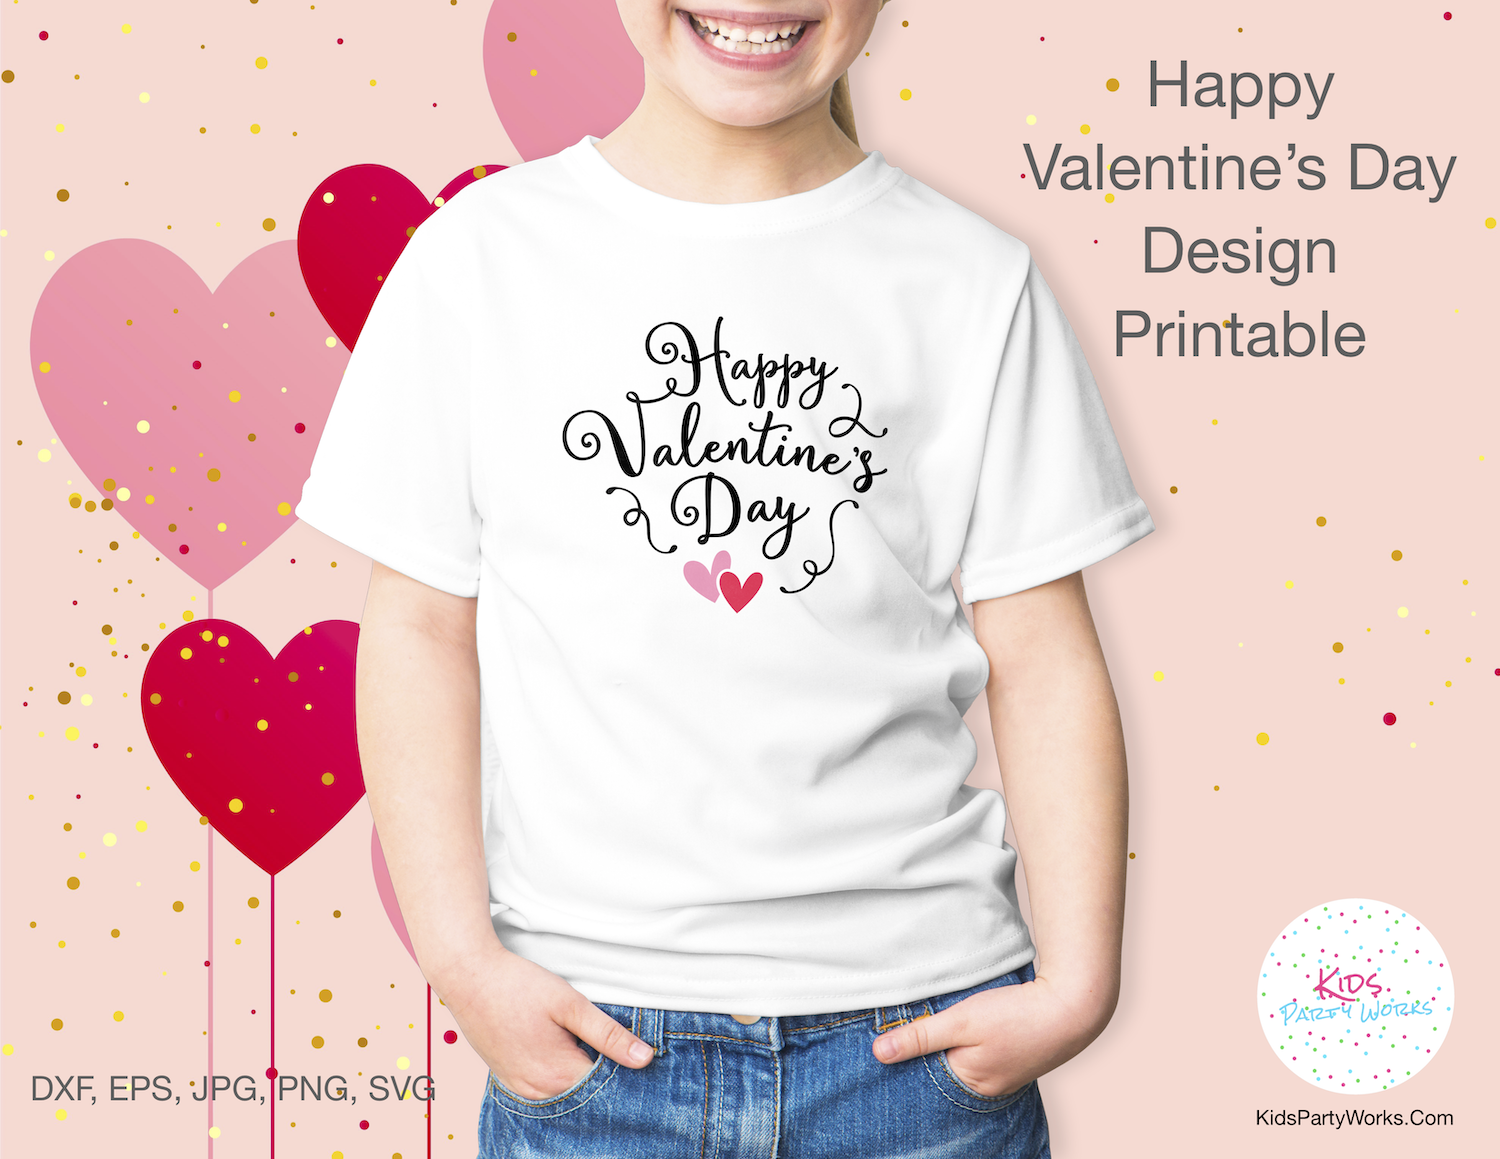 Free Valentine Quote - Great for t-shirts, wall art and Valentine cards. Find lots of free printables at KidsPartyWorks.Com